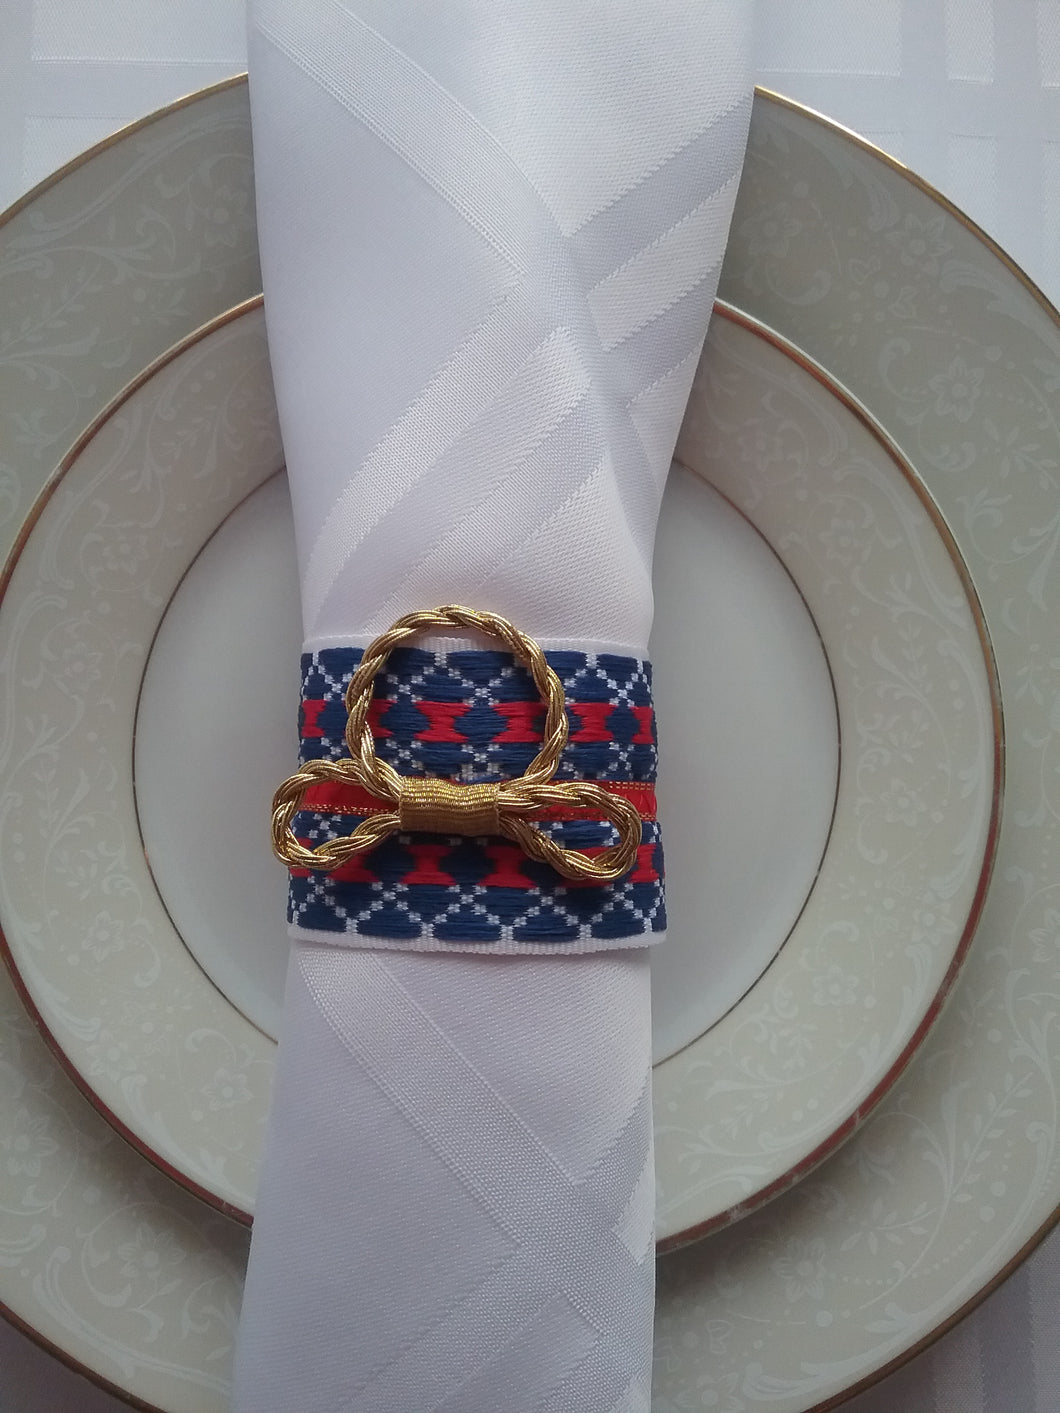 Fariada Napkin Ring Traditional Woven Style Blue Red White Setting Table Style at Home Handmade Art by Maria Iliescu - HANDMADE ART BY MARIA ILIESCU